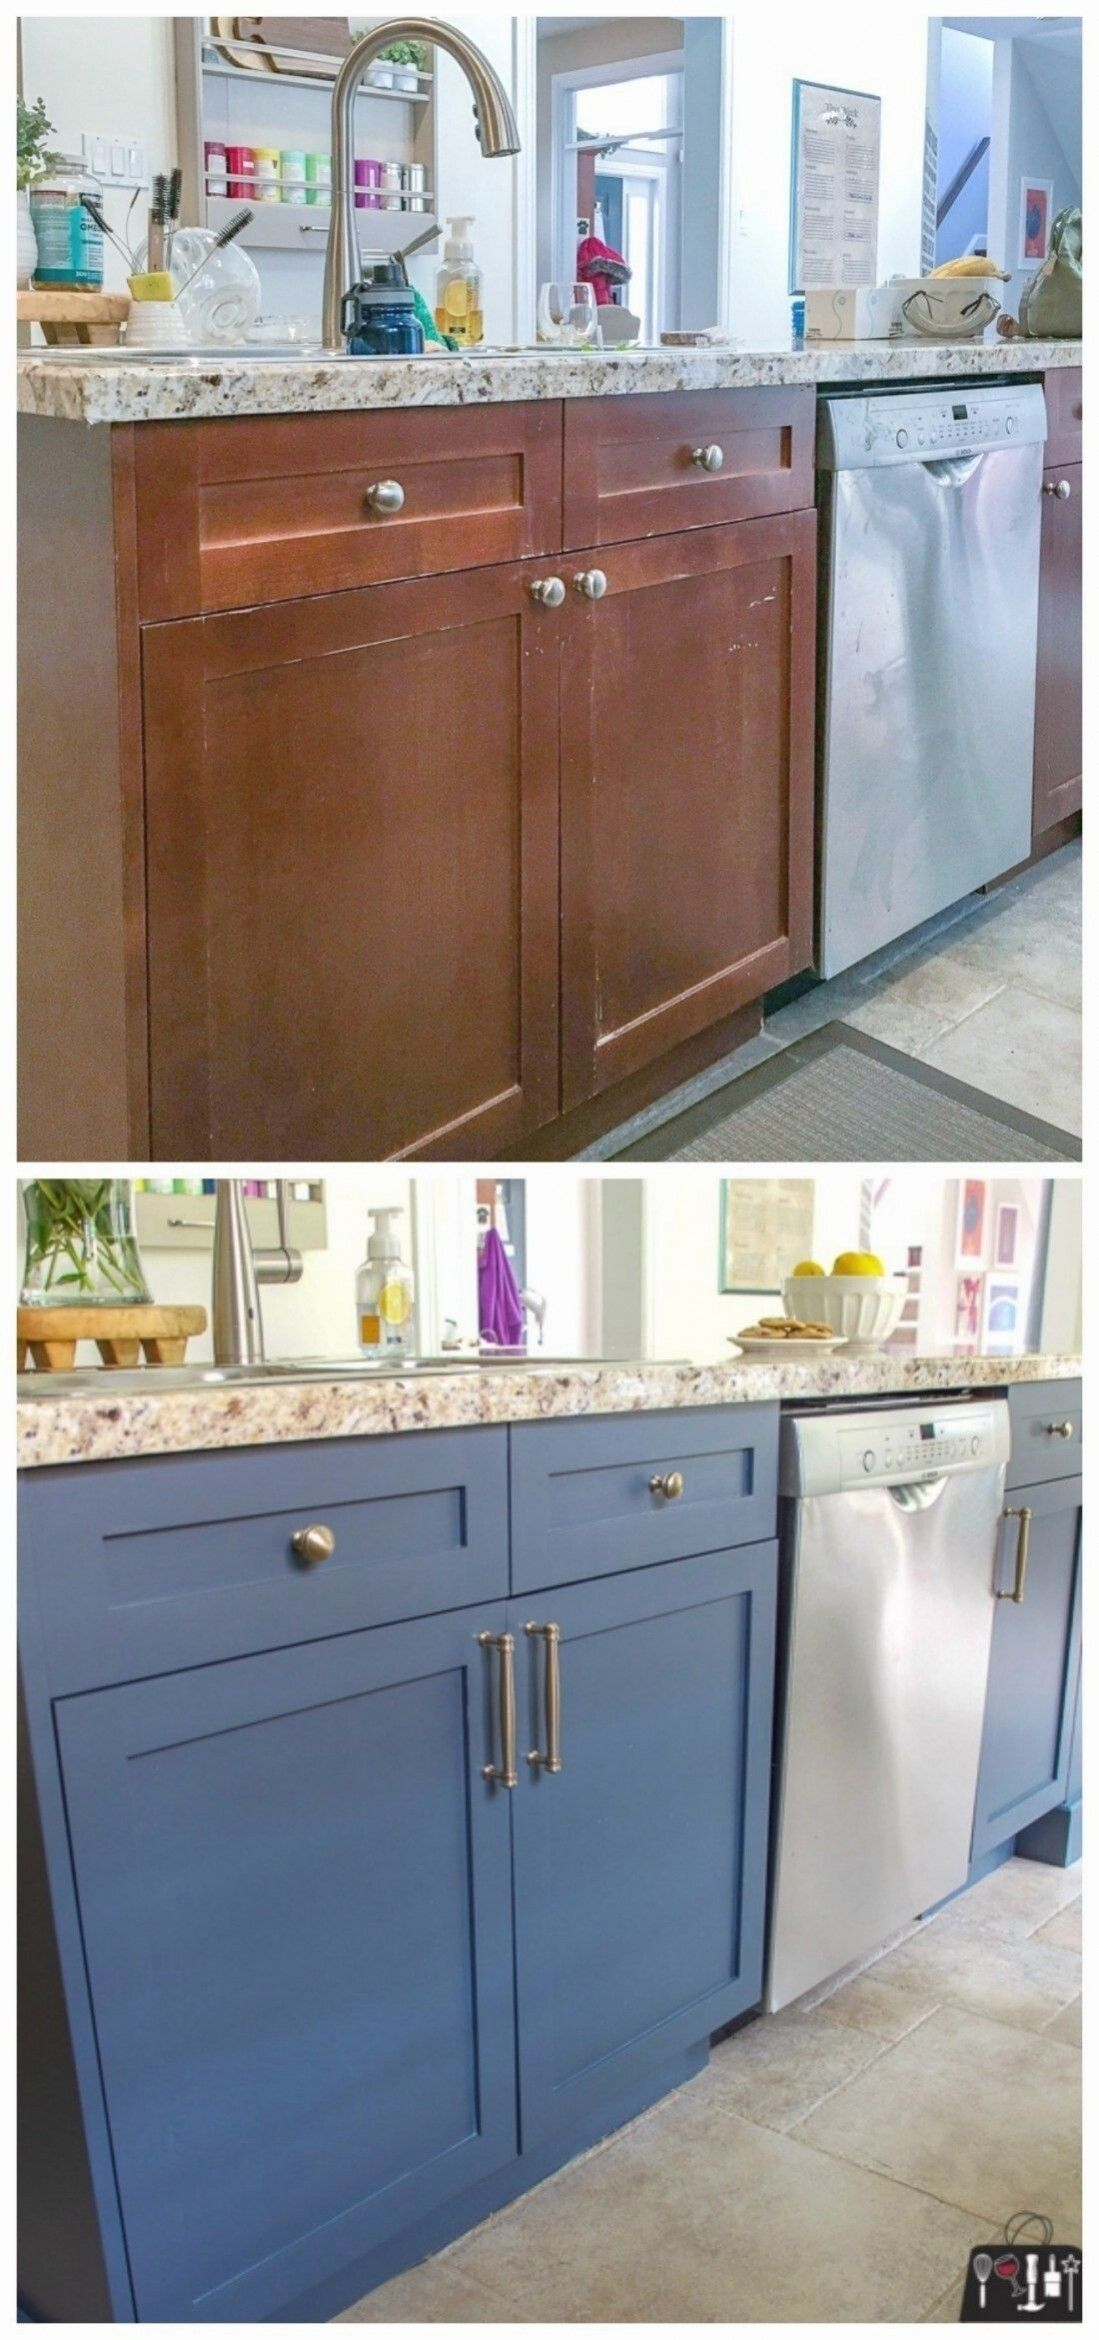 Kitchen Makeover On A Budget 100 Things 2 Do In 2020 Budget Kitchen Makeover Kitchen Diy Makeover Kitchen Cabinets Makeover